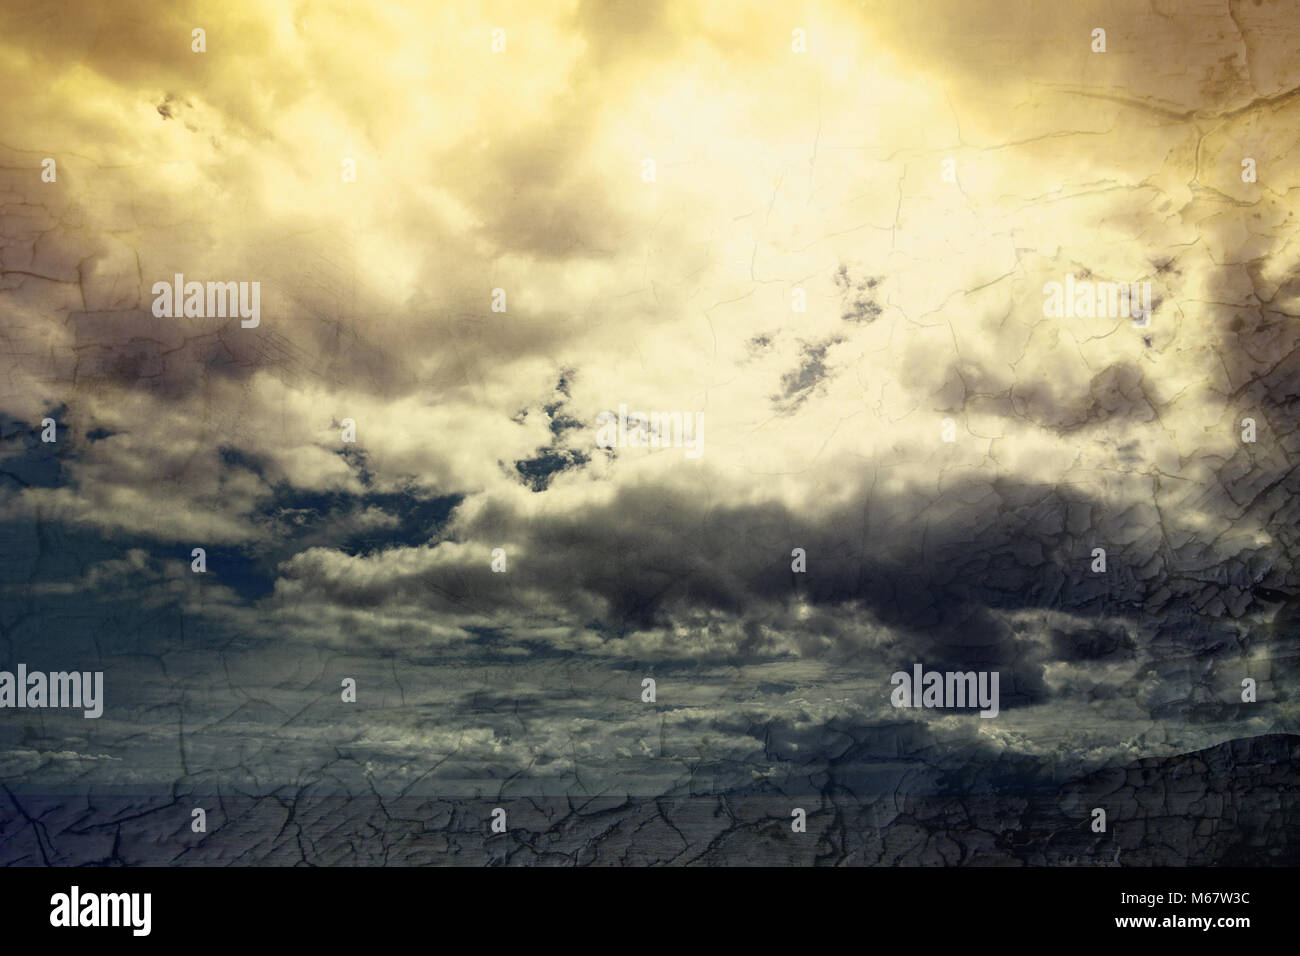 Global warming concept landscape. Dramatic cloudy sky and dry cracked earth - Stock Image